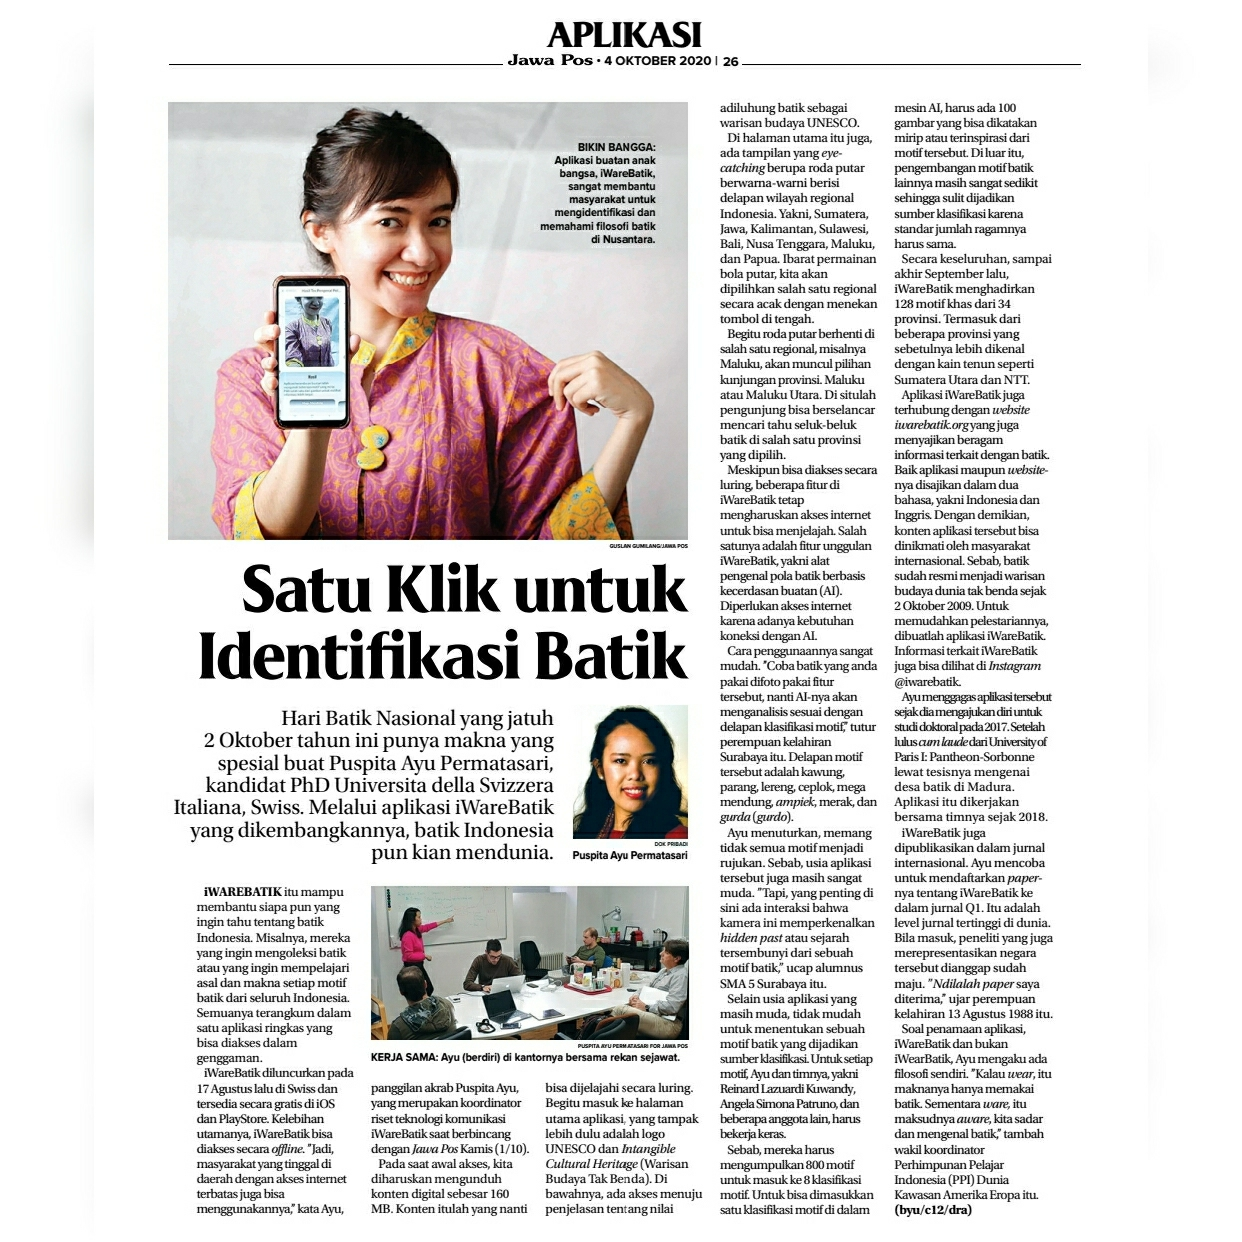 iWareBatik on Youth Oath Day 2020: Exclusive interview with Jawa Pos, Mata Garuda LPDP and Australian Garland Magazine